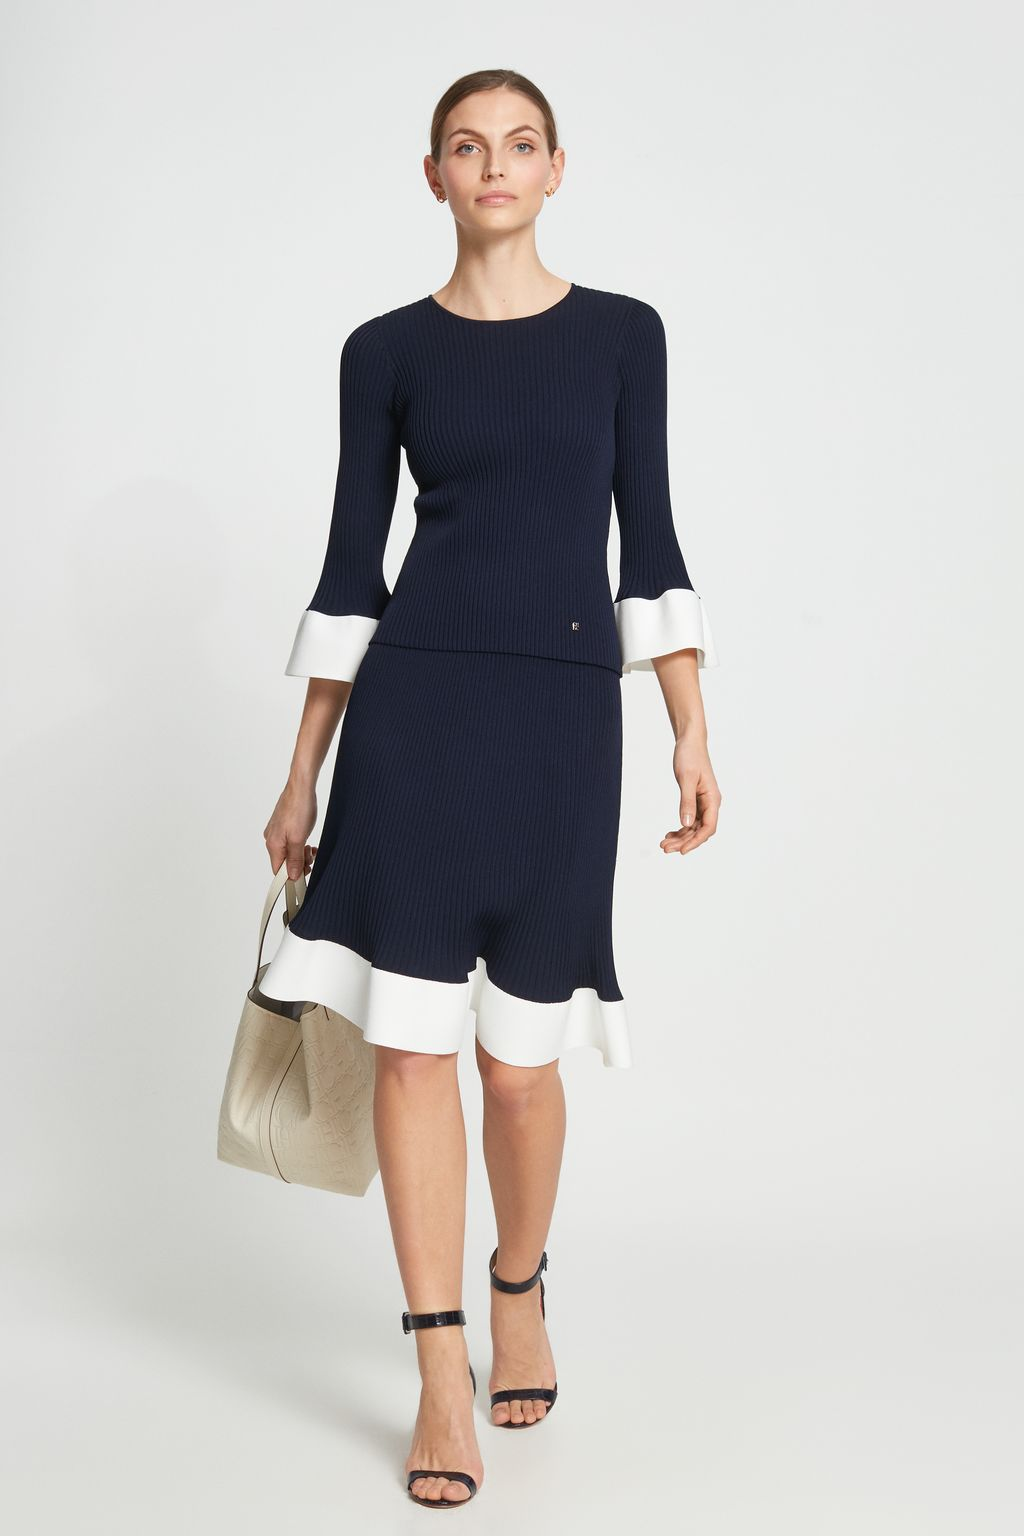 Ribbed knit skirt with ruffle